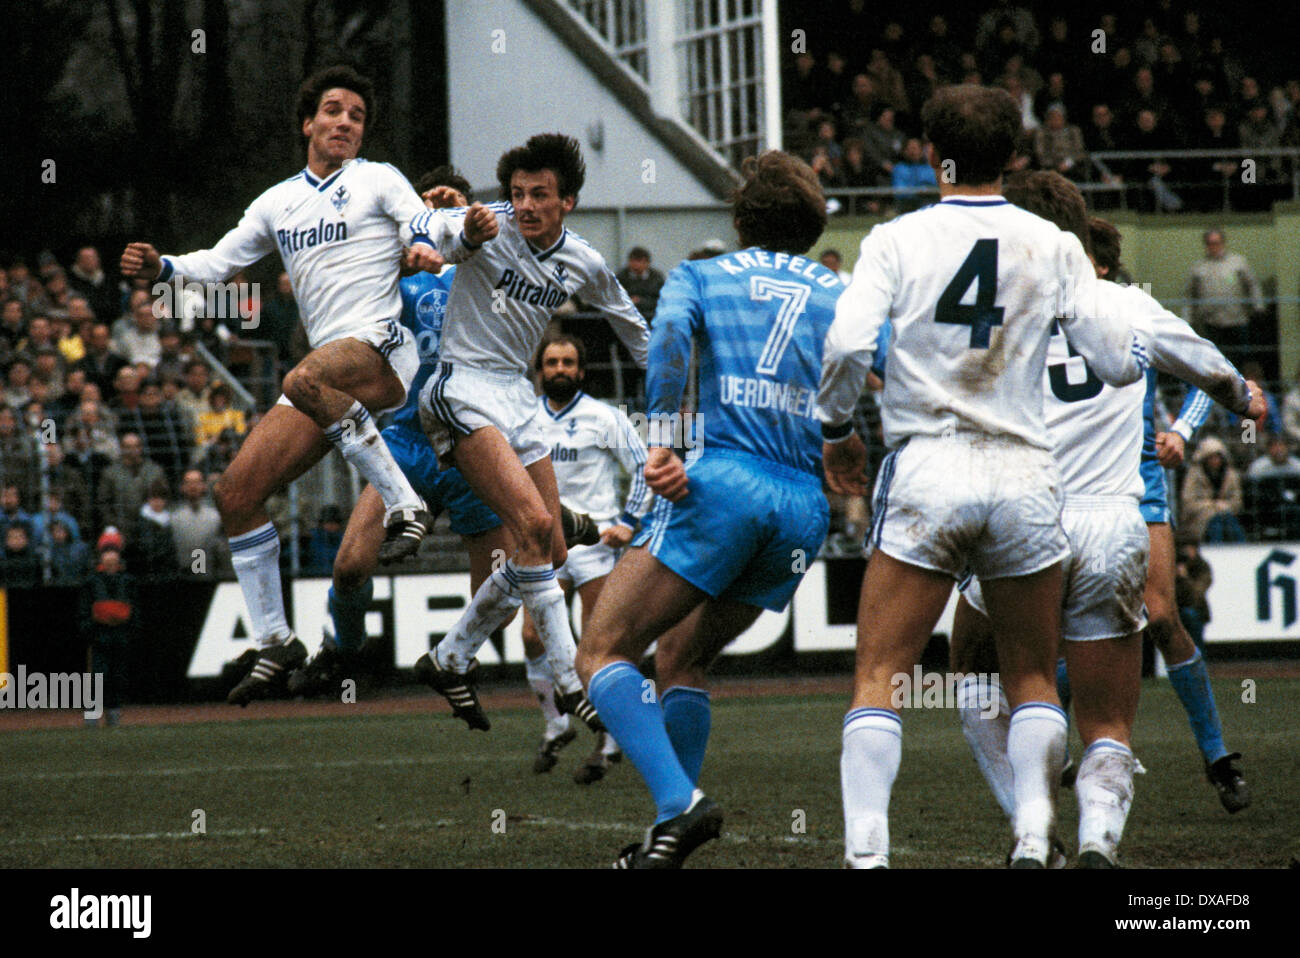 football, Bundesliga, 1984/1985, Grotenburg Stadium, FC Bayer 05 Uerdingen versus SV Waldhof Mannheim 2:2, scene of the match, aerial duel, Bernd Klotz (SVW) left and Juergen Kohler (SVW), behind Rainer Scholz (SVW) - Stock Image